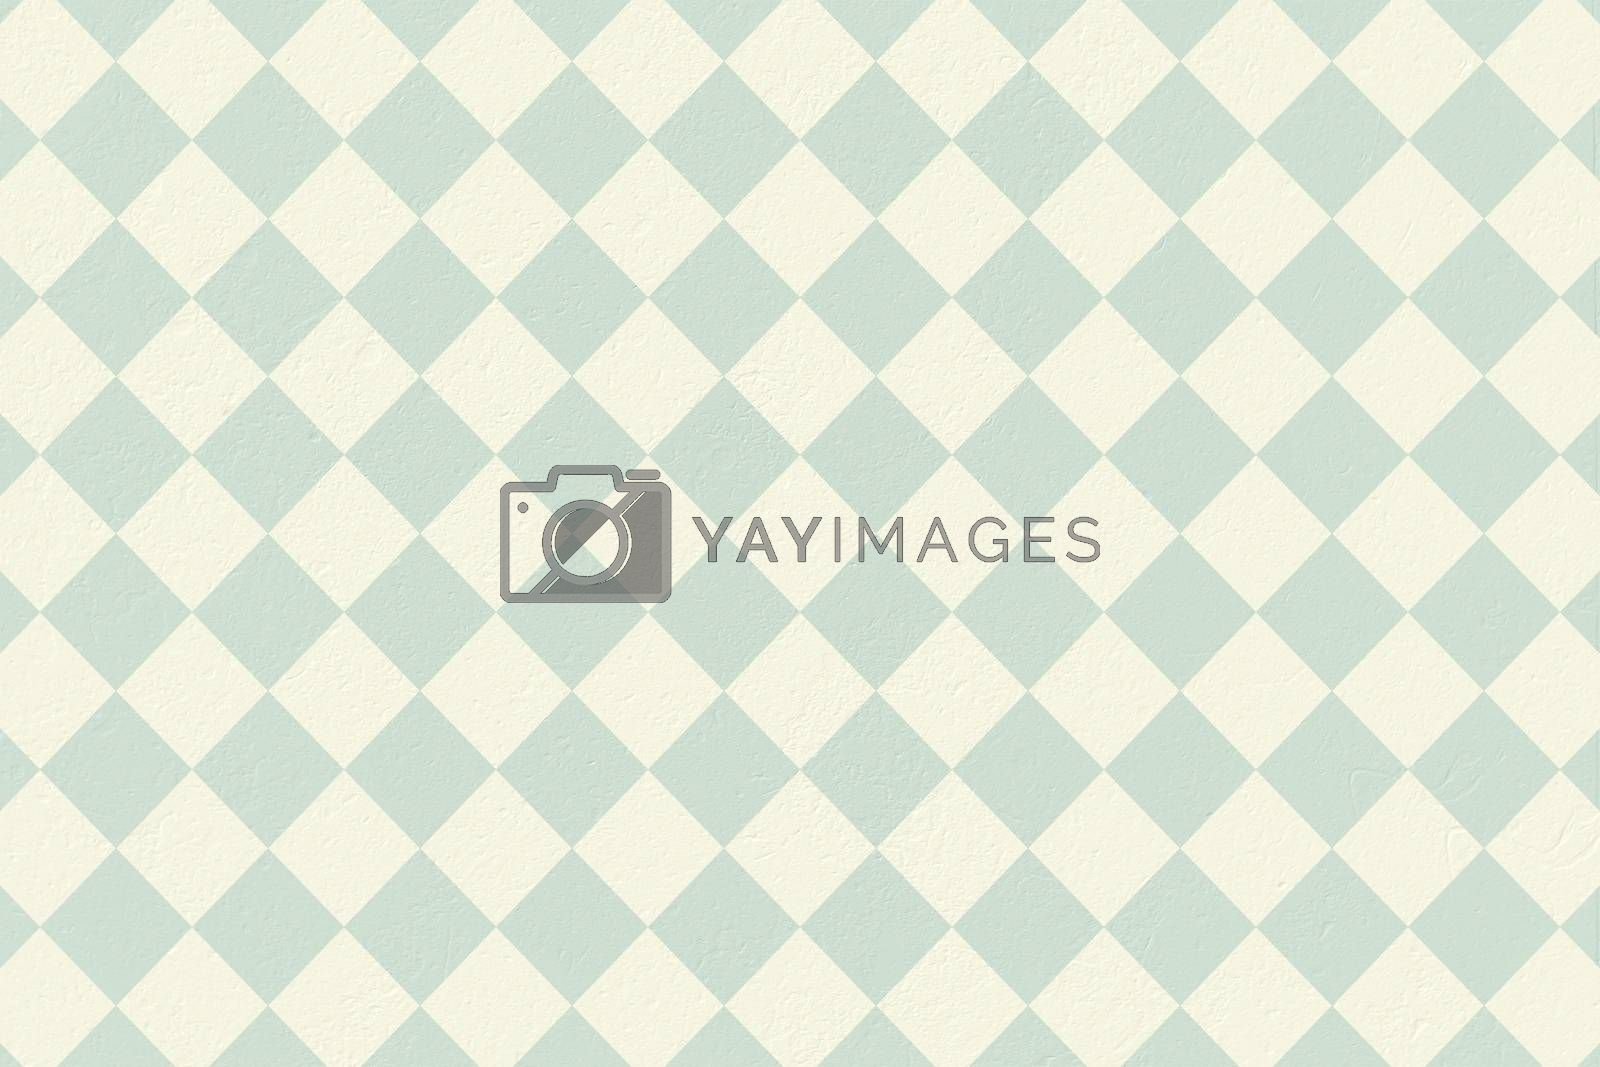 Royalty free image of Blue and cream patterned wallpaper by Wavebreakmedia